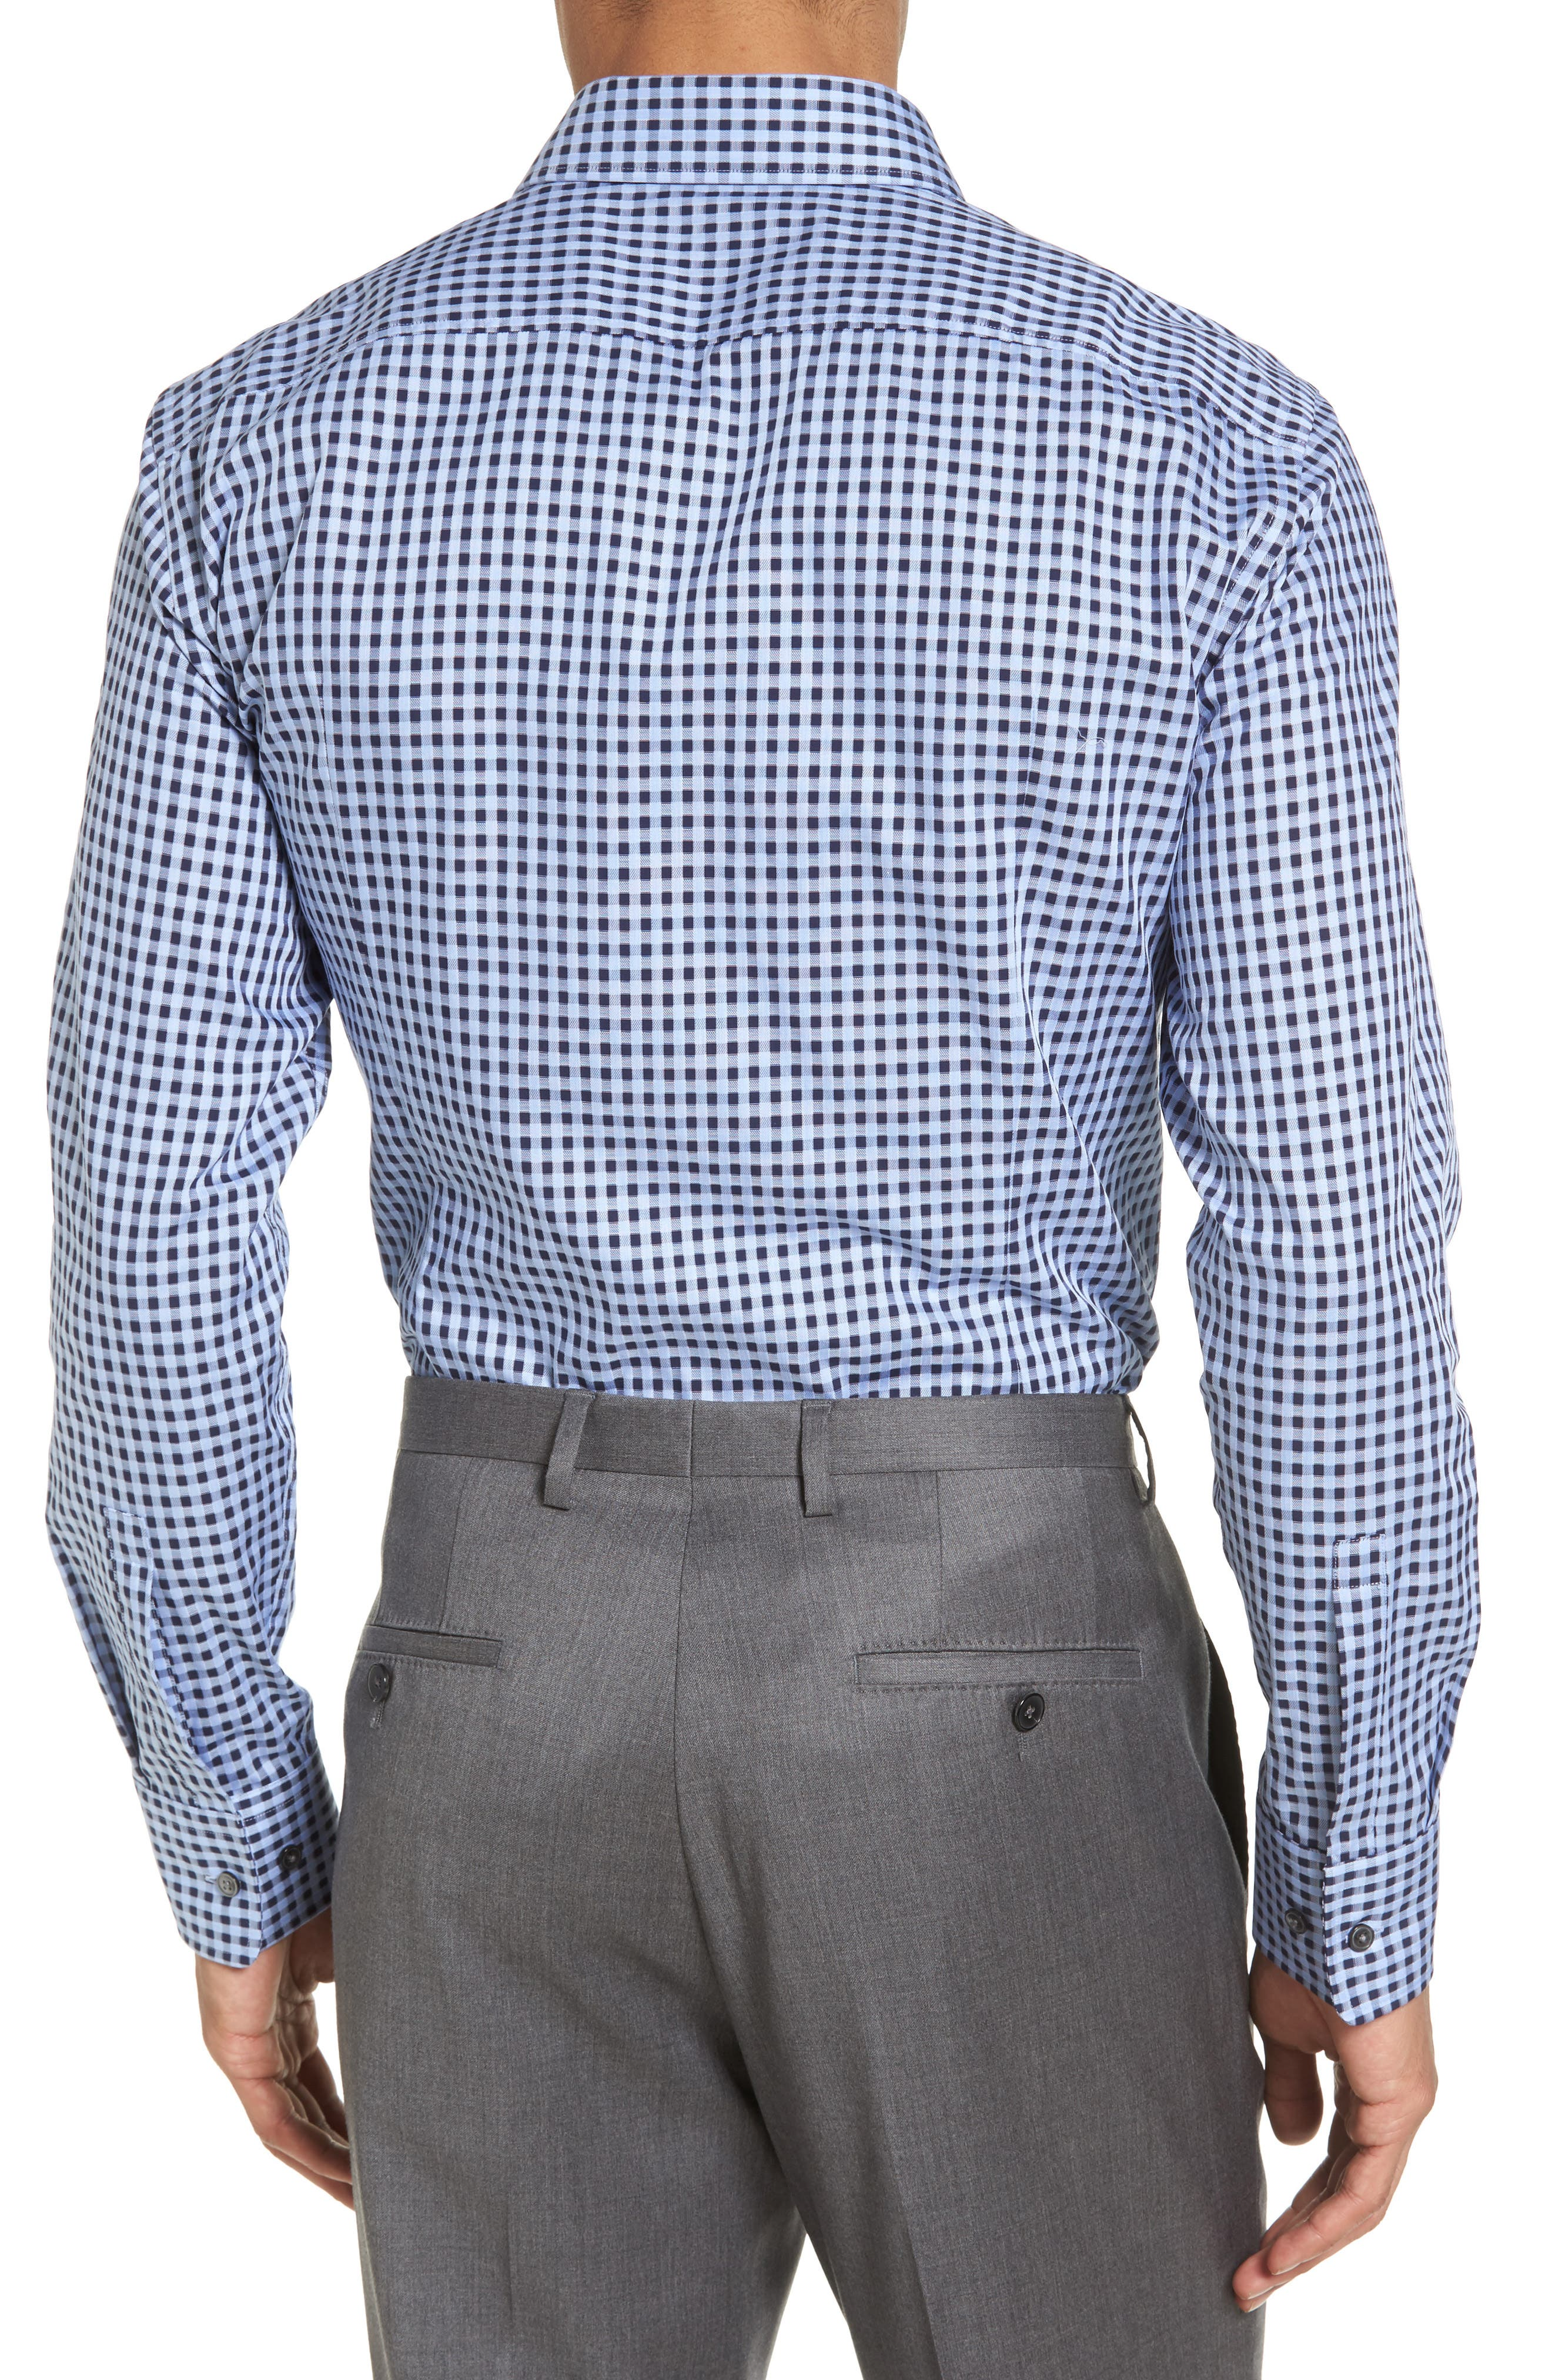 Sharp Fit Check Dress Shirt,                             Alternate thumbnail 3, color,                             Blue